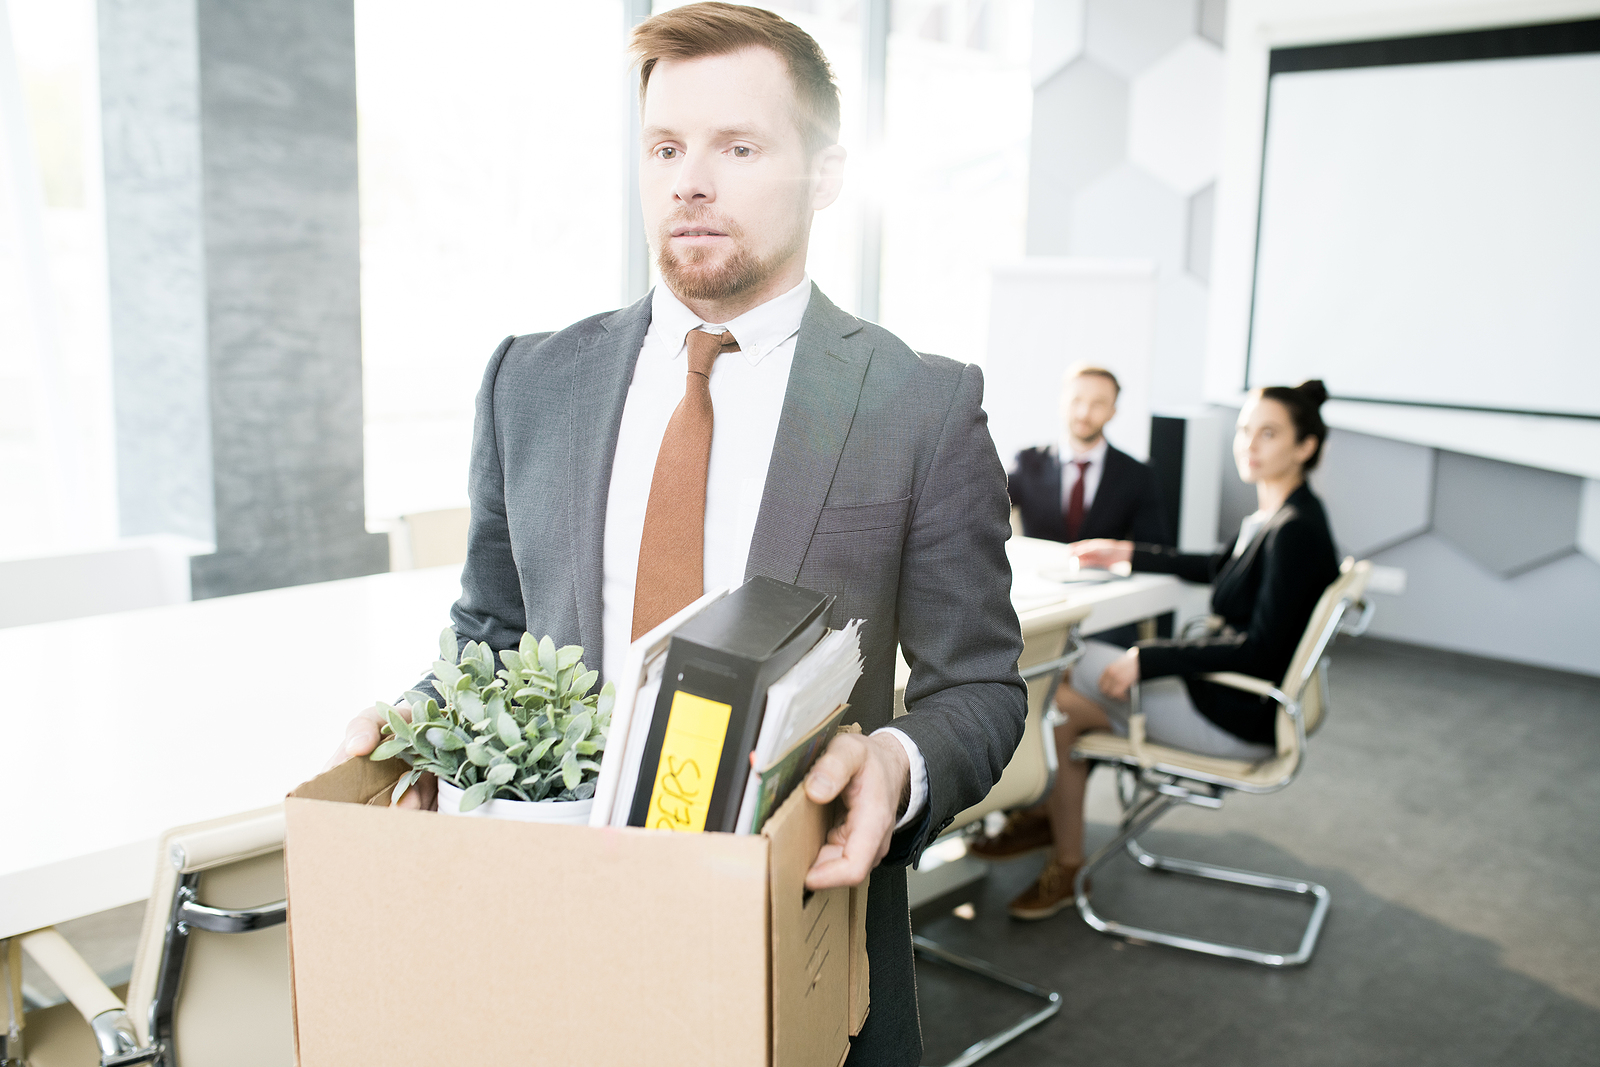 Constructive dismissal in Ontario – a tale of two decisions